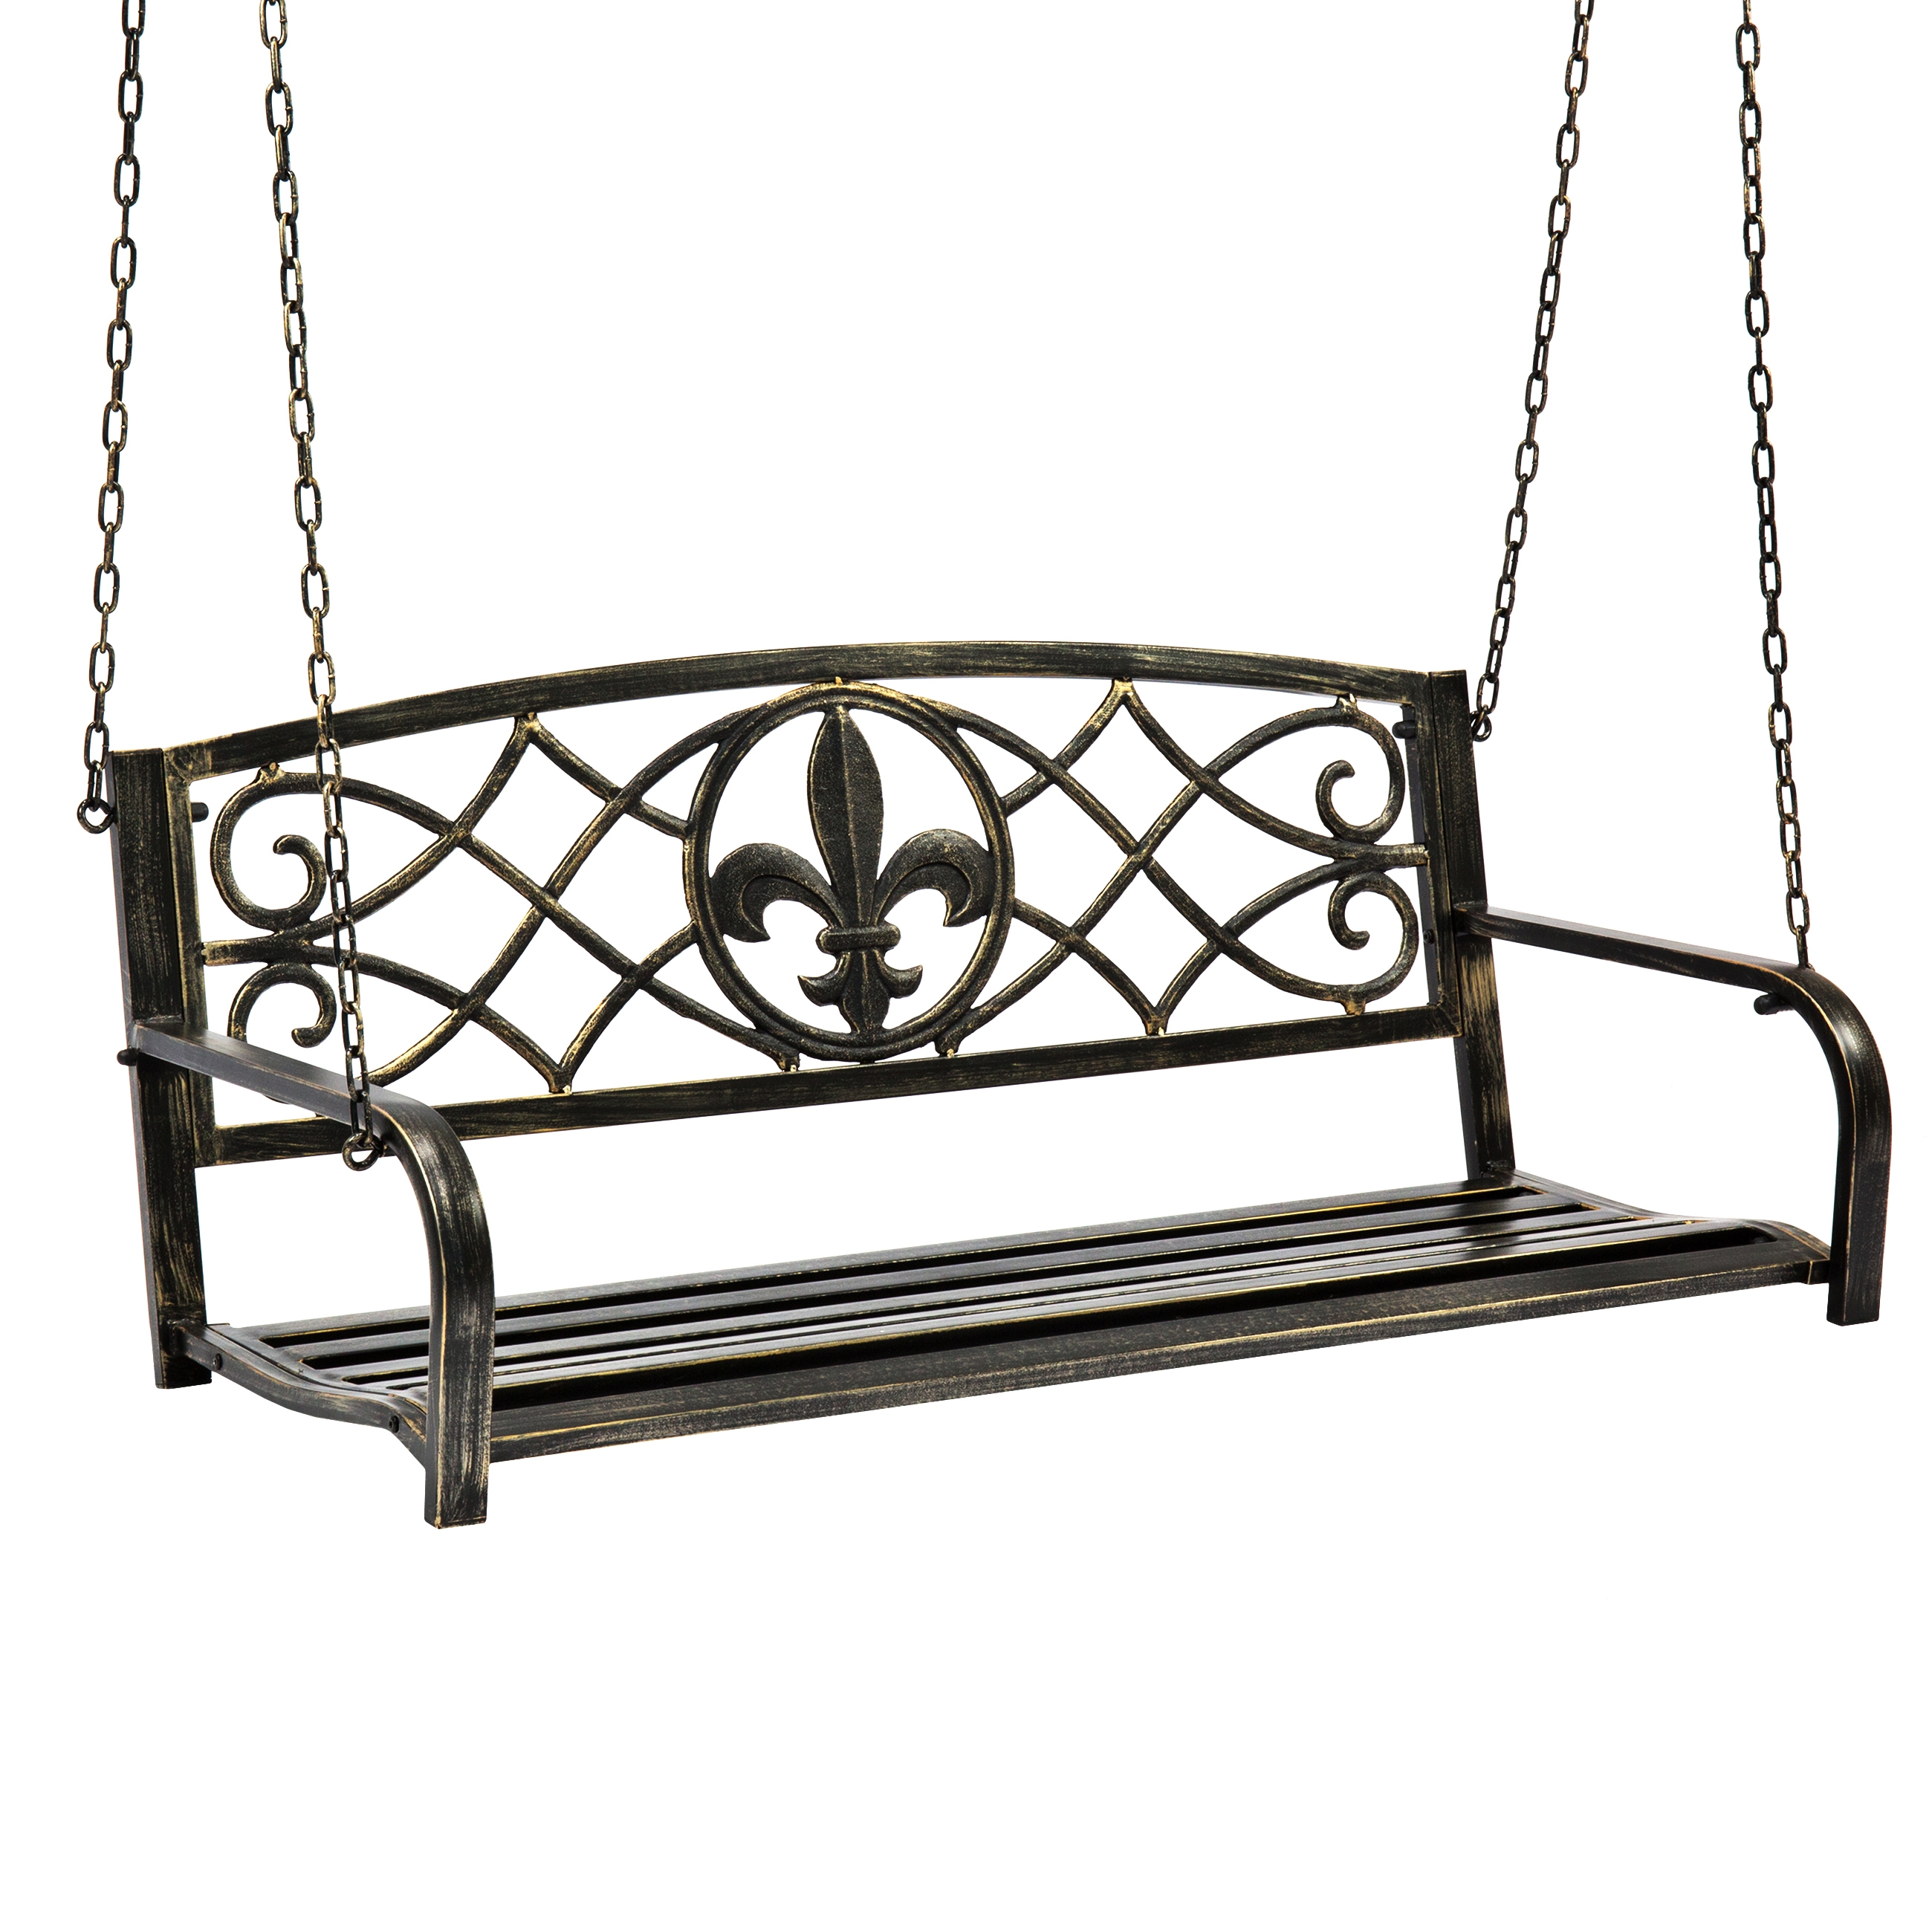 Best Choice Products Outdoor Furniture Metal Fleur-De-Lis Hanging Patio Porch Swing Bronze by Best Choice Products